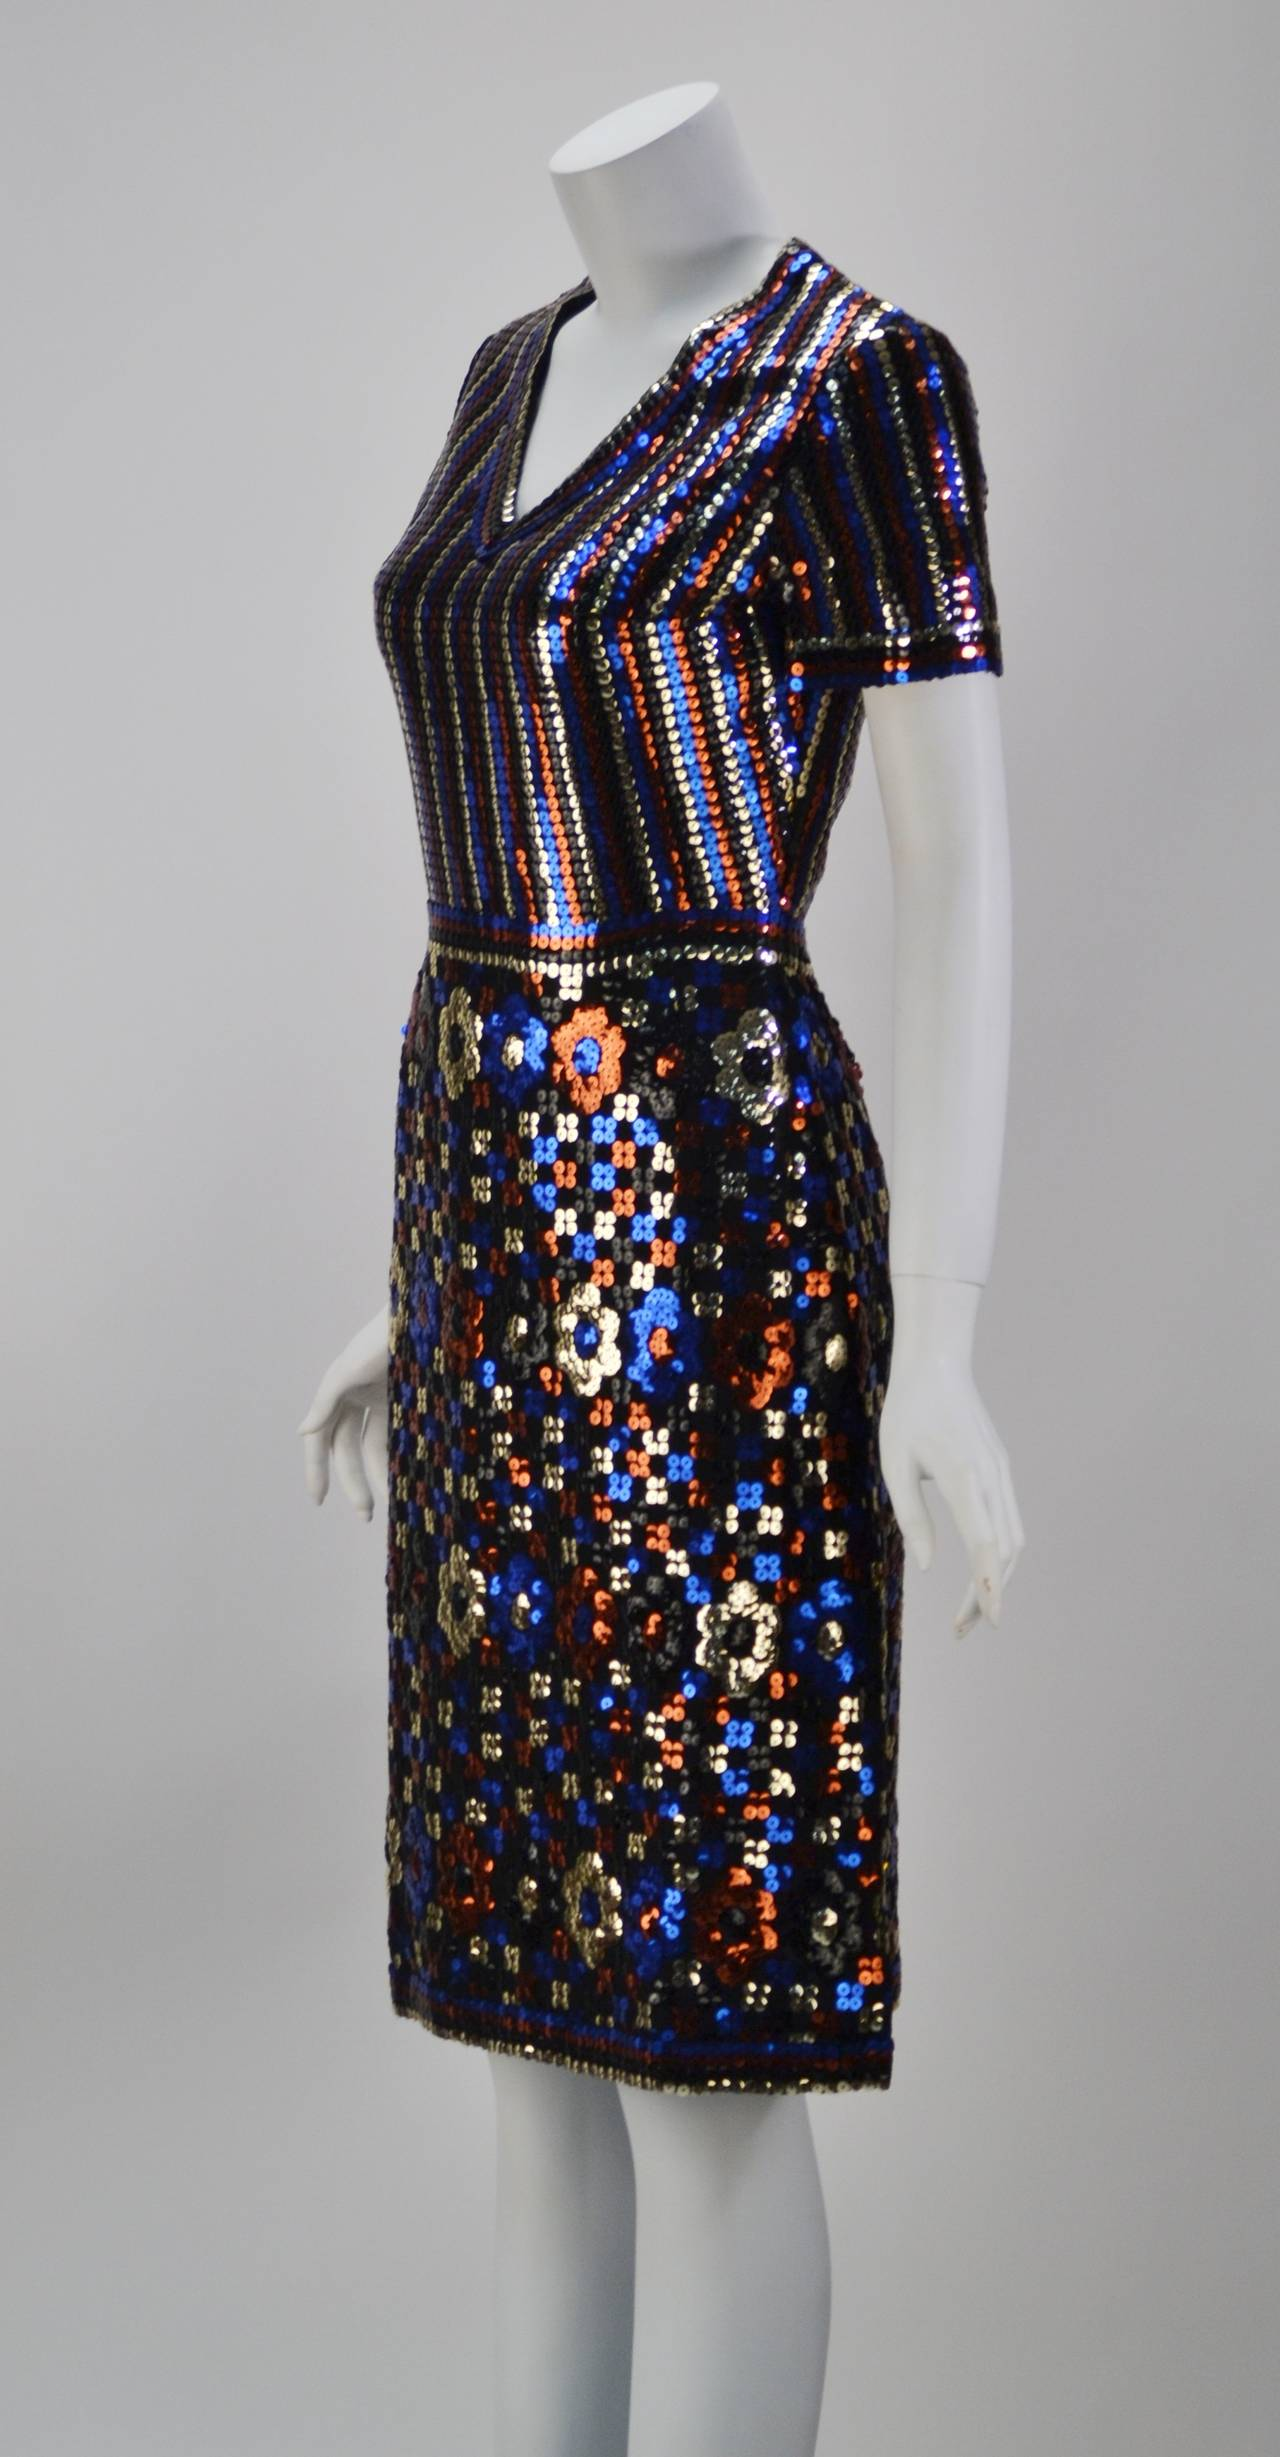 Stunning 1960's short sleeve, v-neck black silk with red, blue, black and silver sequins dress by Trevise, Paris. The top of the dress has the sequins going in vertical rows, while the skirt has the them in floral designs. It has a zippered back